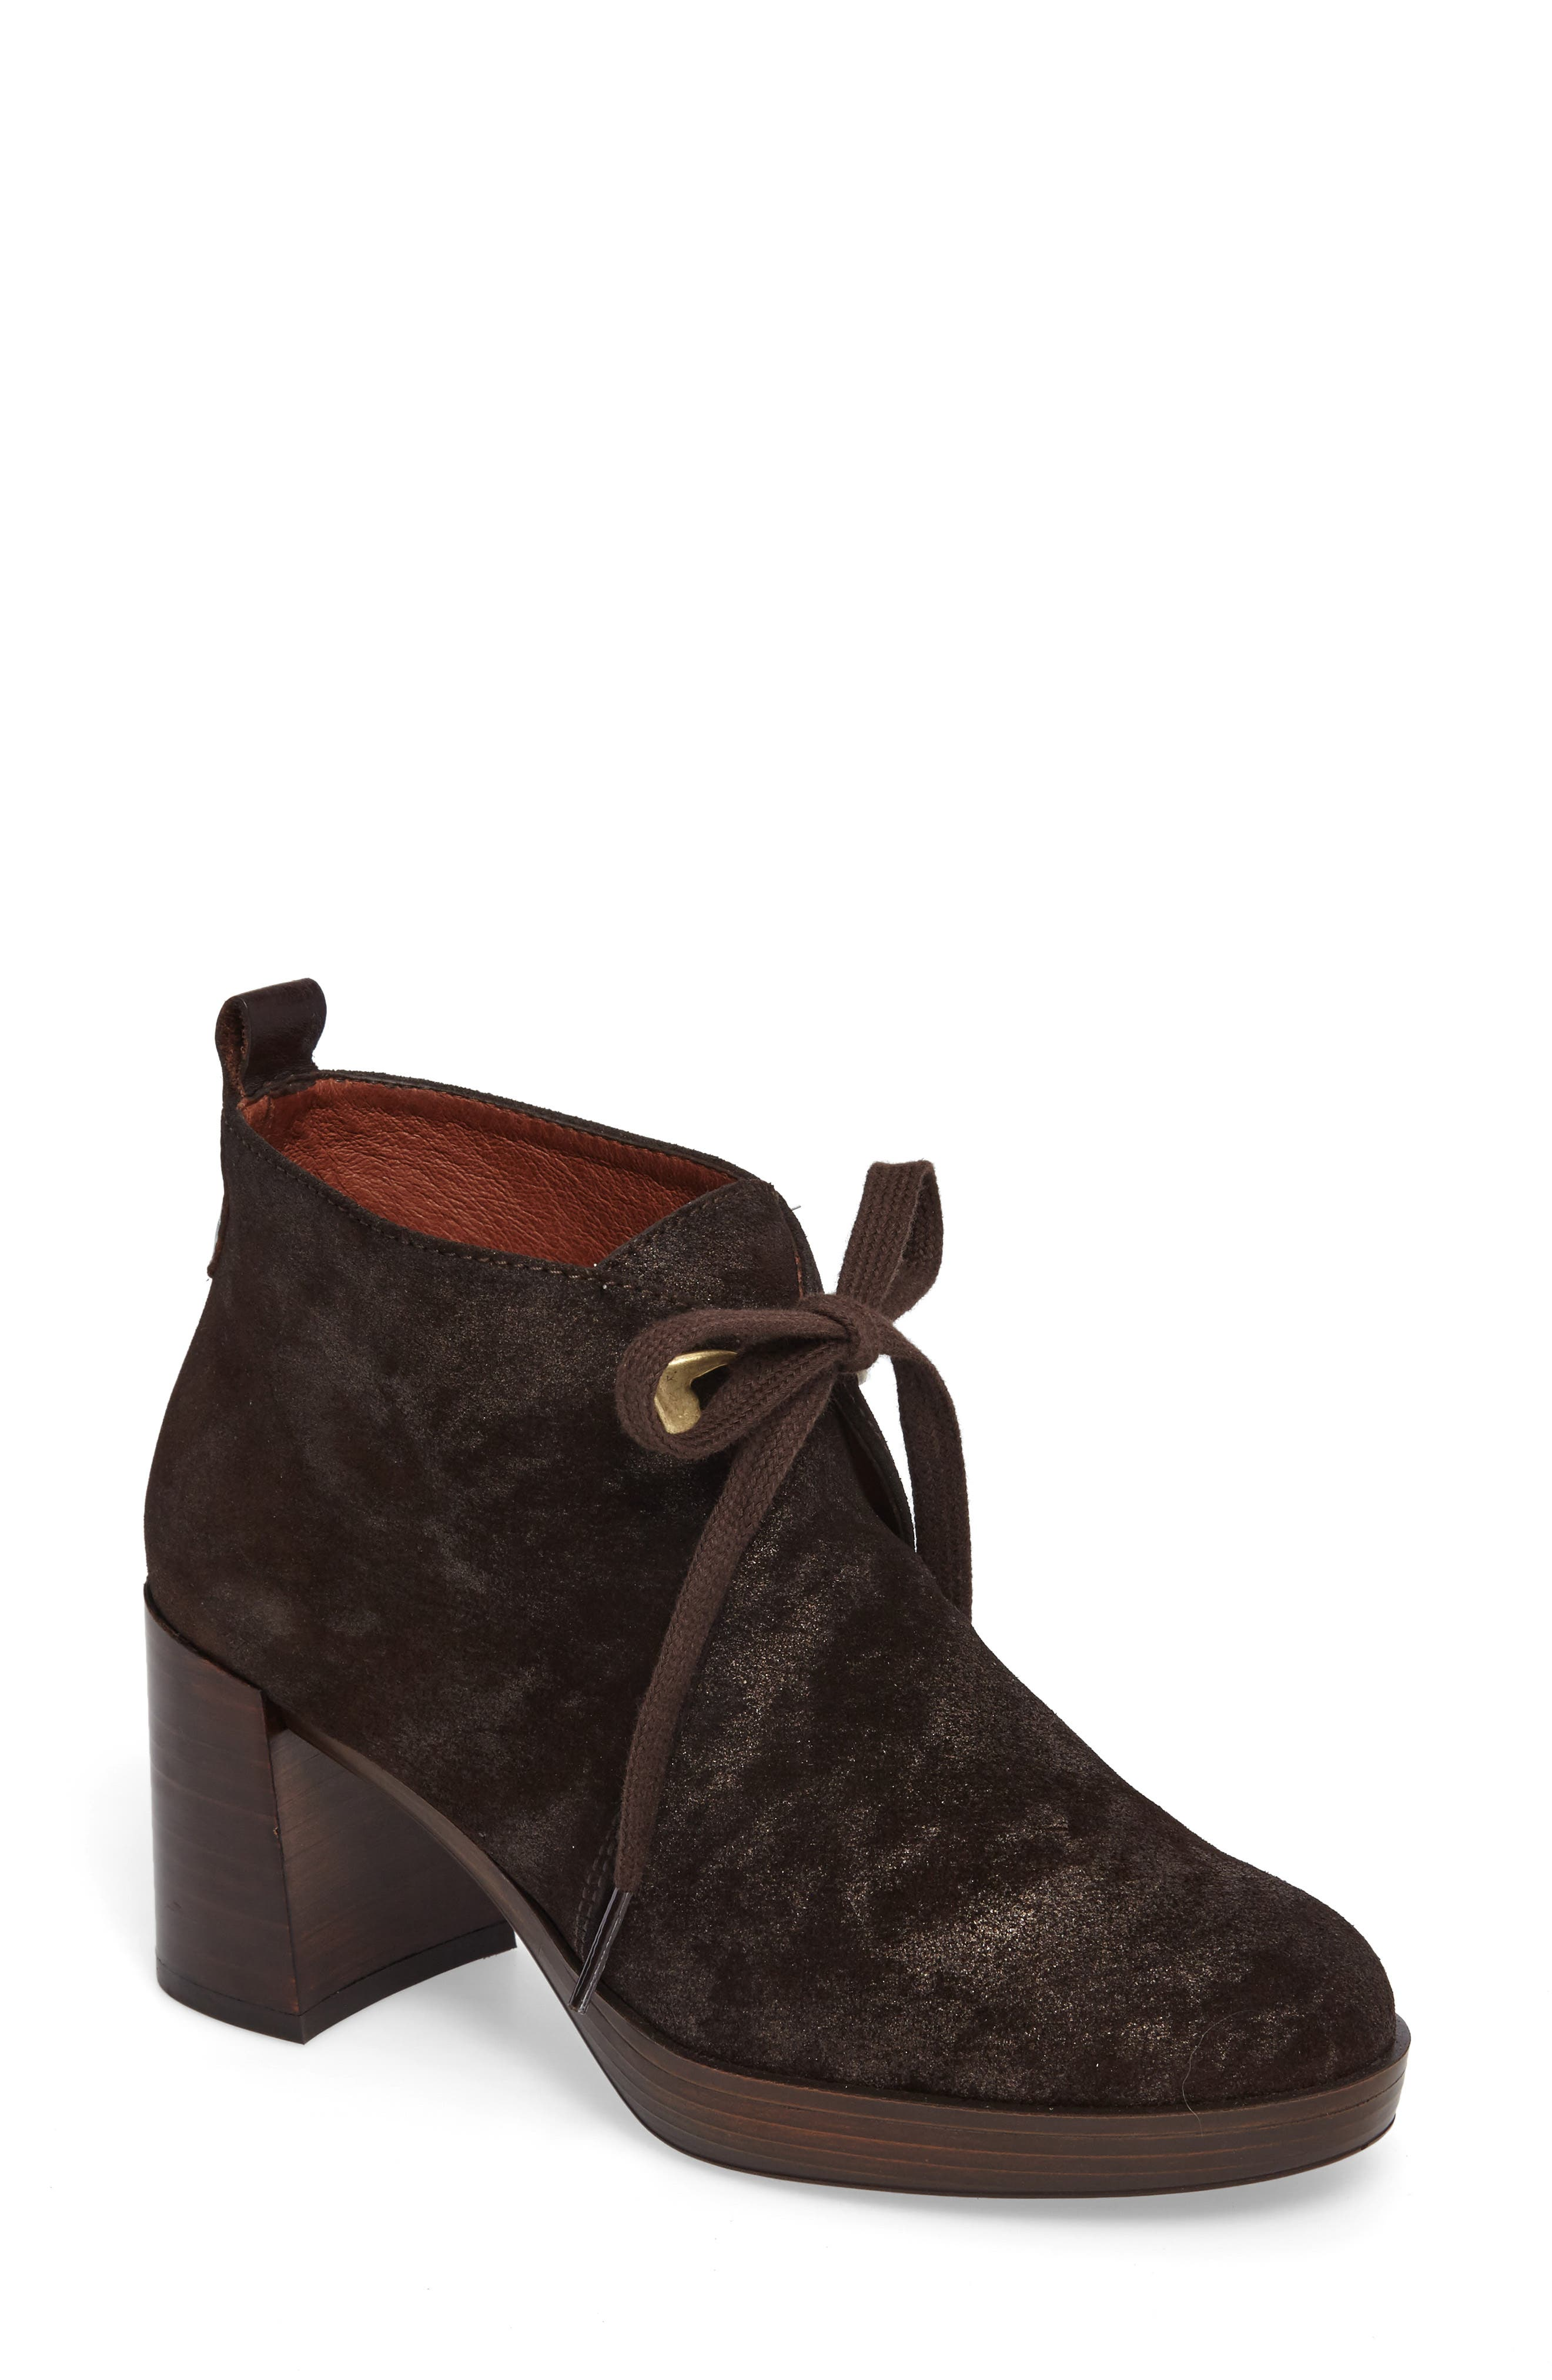 Dasia Bow Bootie,                         Main,                         color, 200